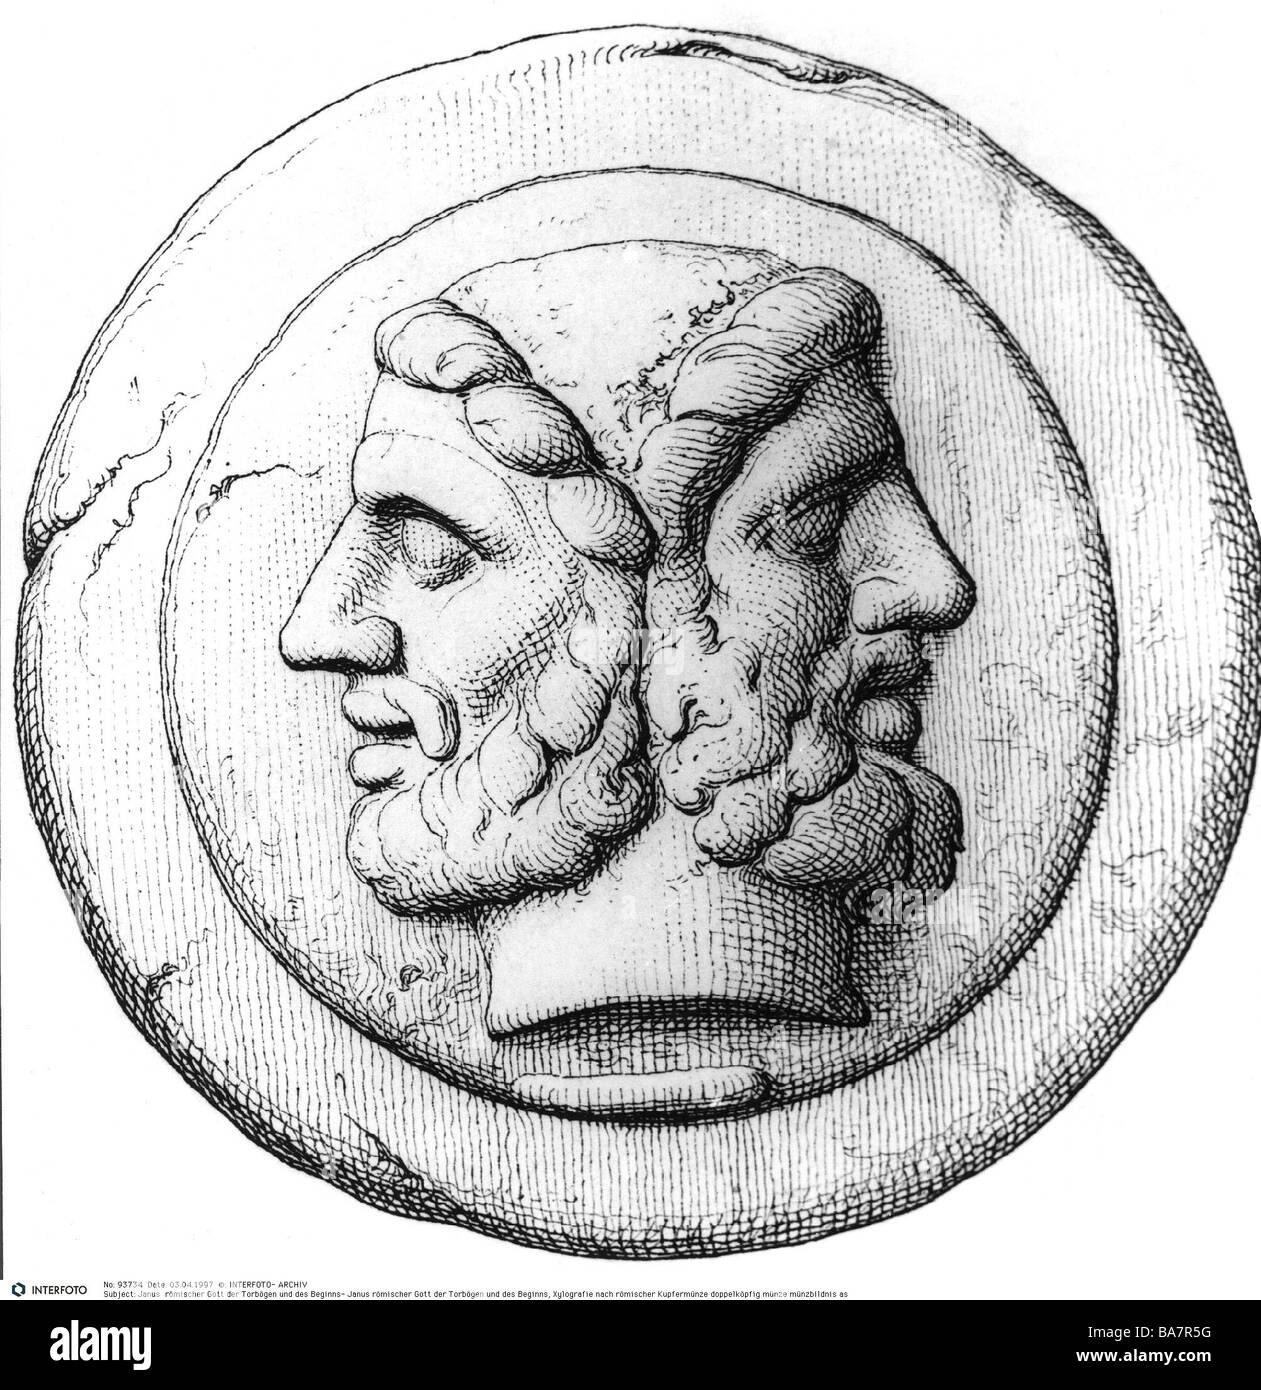 Janus, Roman god of gates, doors, doorways, beginnings and endings, wood engraving, after Roman copper coin, Additional - Stock Image